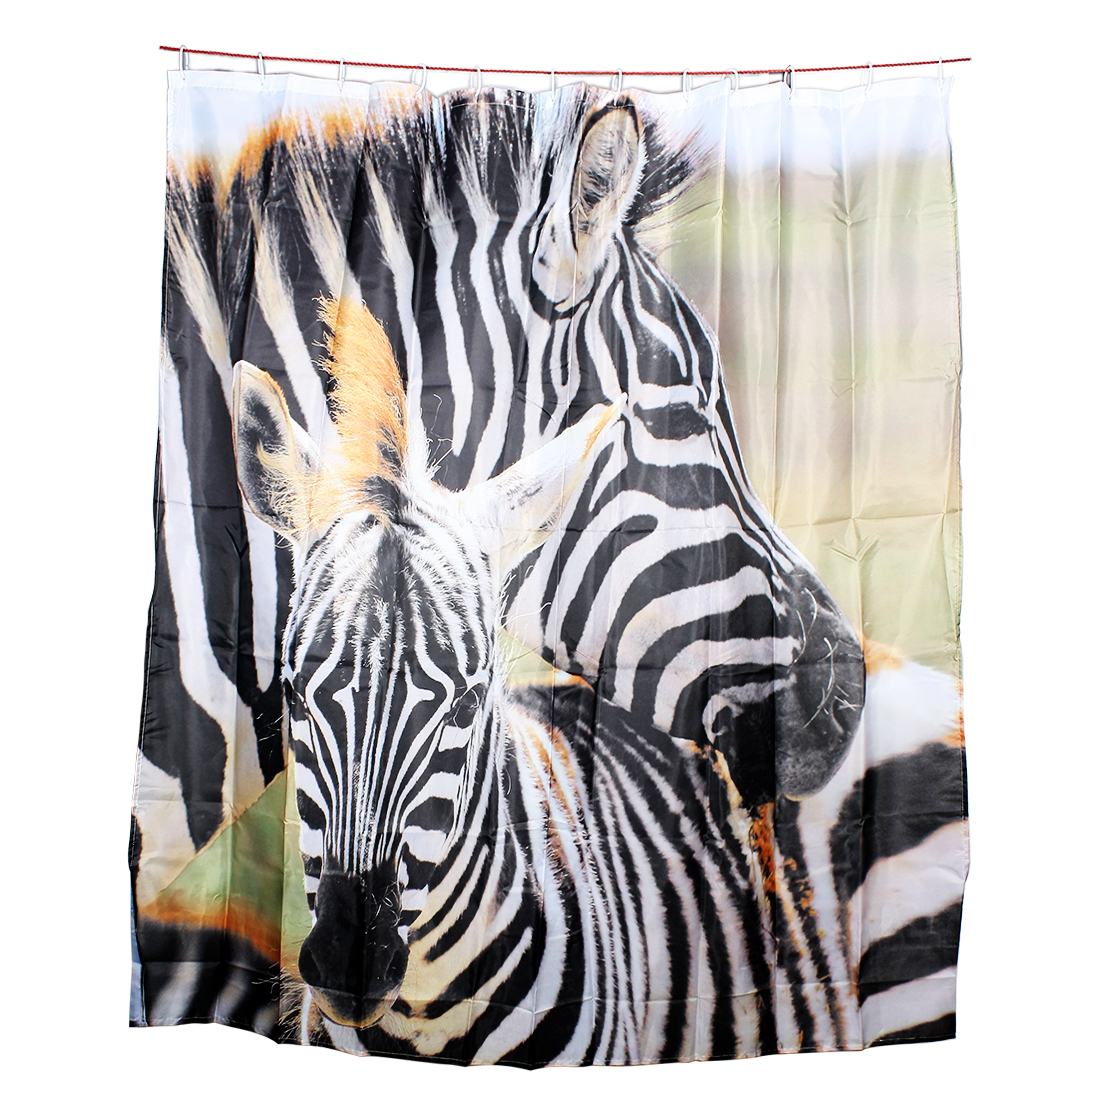 Black and White Zebra Pattern Bathroom Decor Shower Curtain w Hooks 180 x 180cm